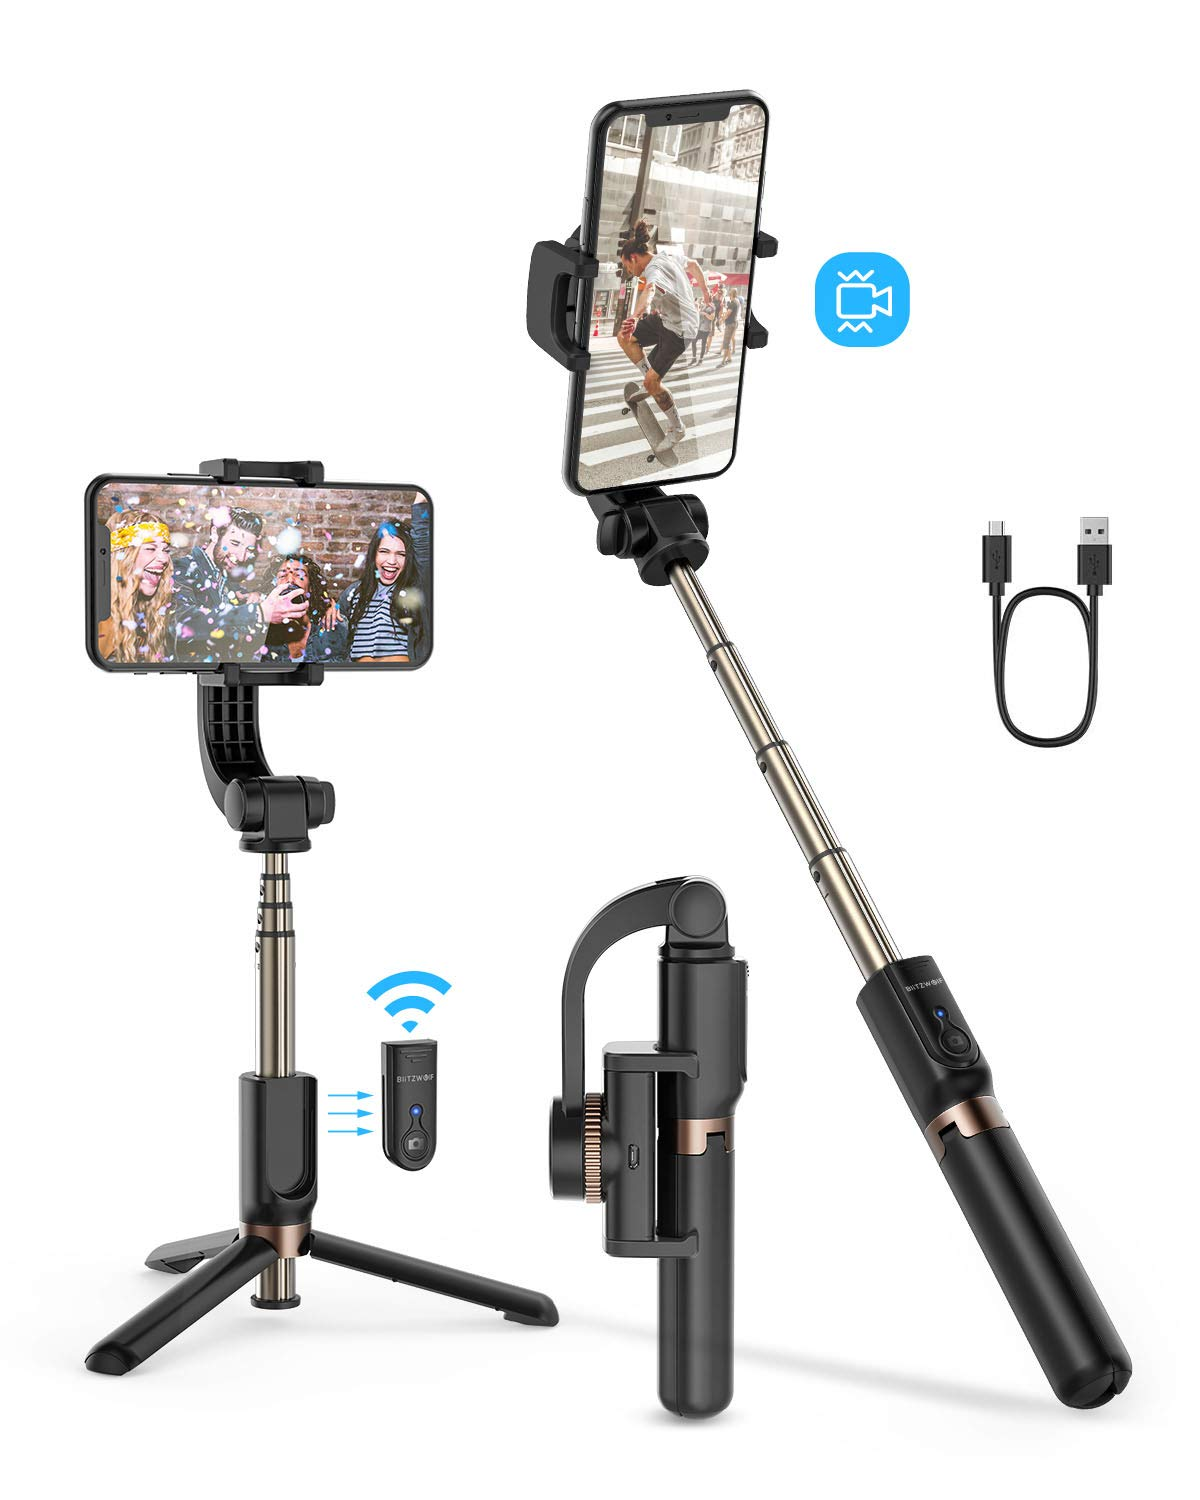 BlitzWolf Selfie Stick Treppiede con Gimbal Stabilizzatore One-Axis